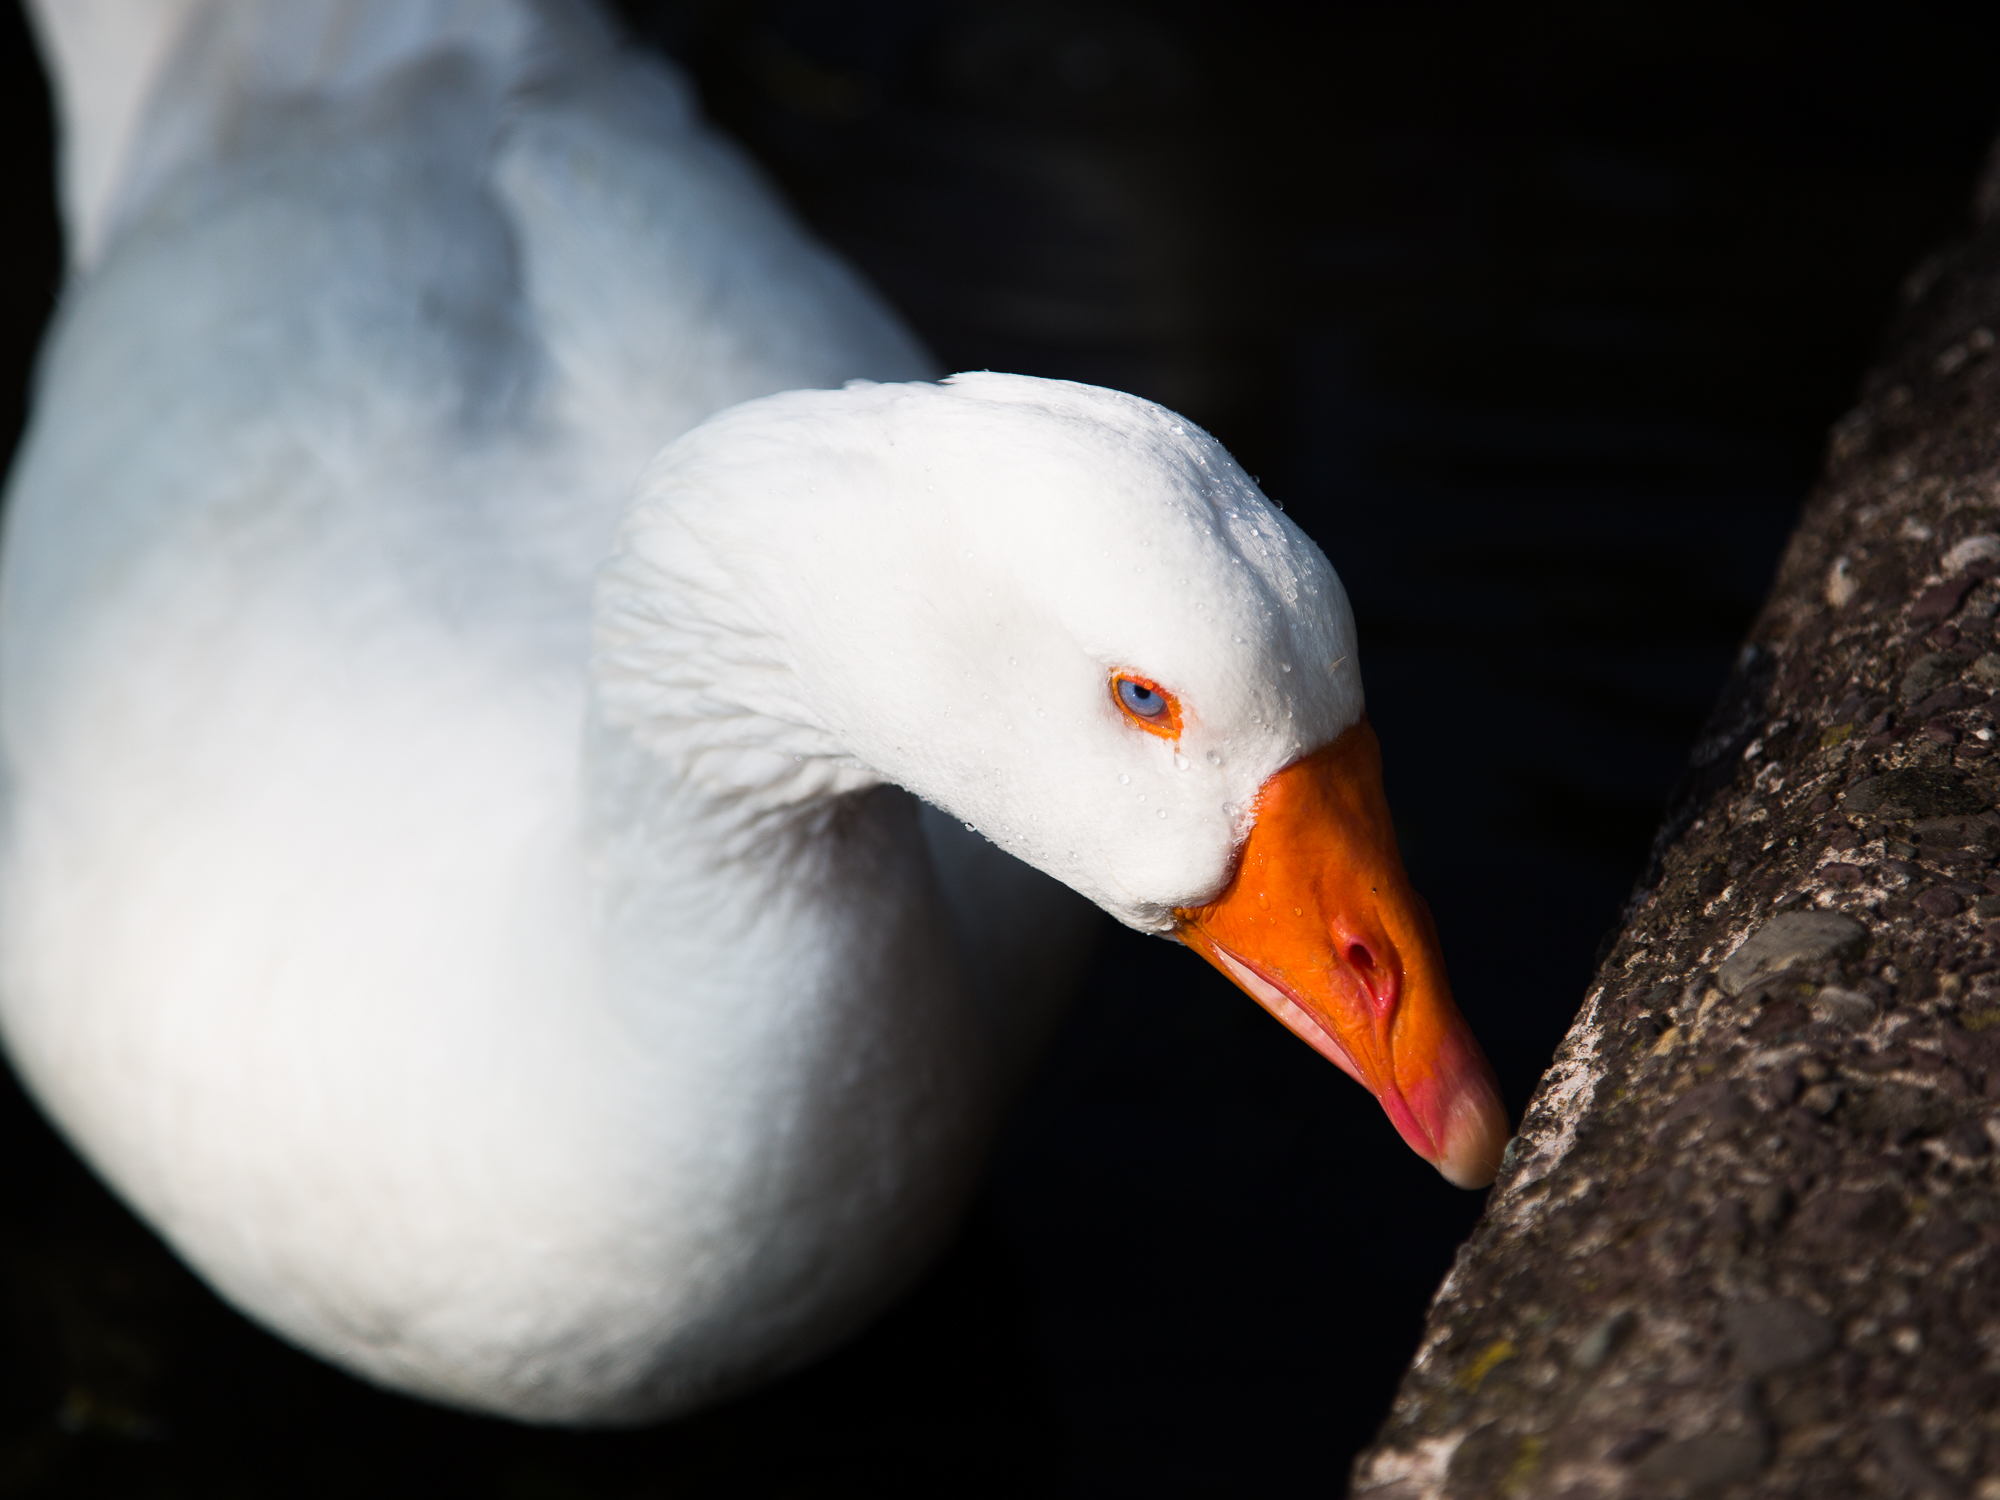 A white duck with sparkling blue eyes